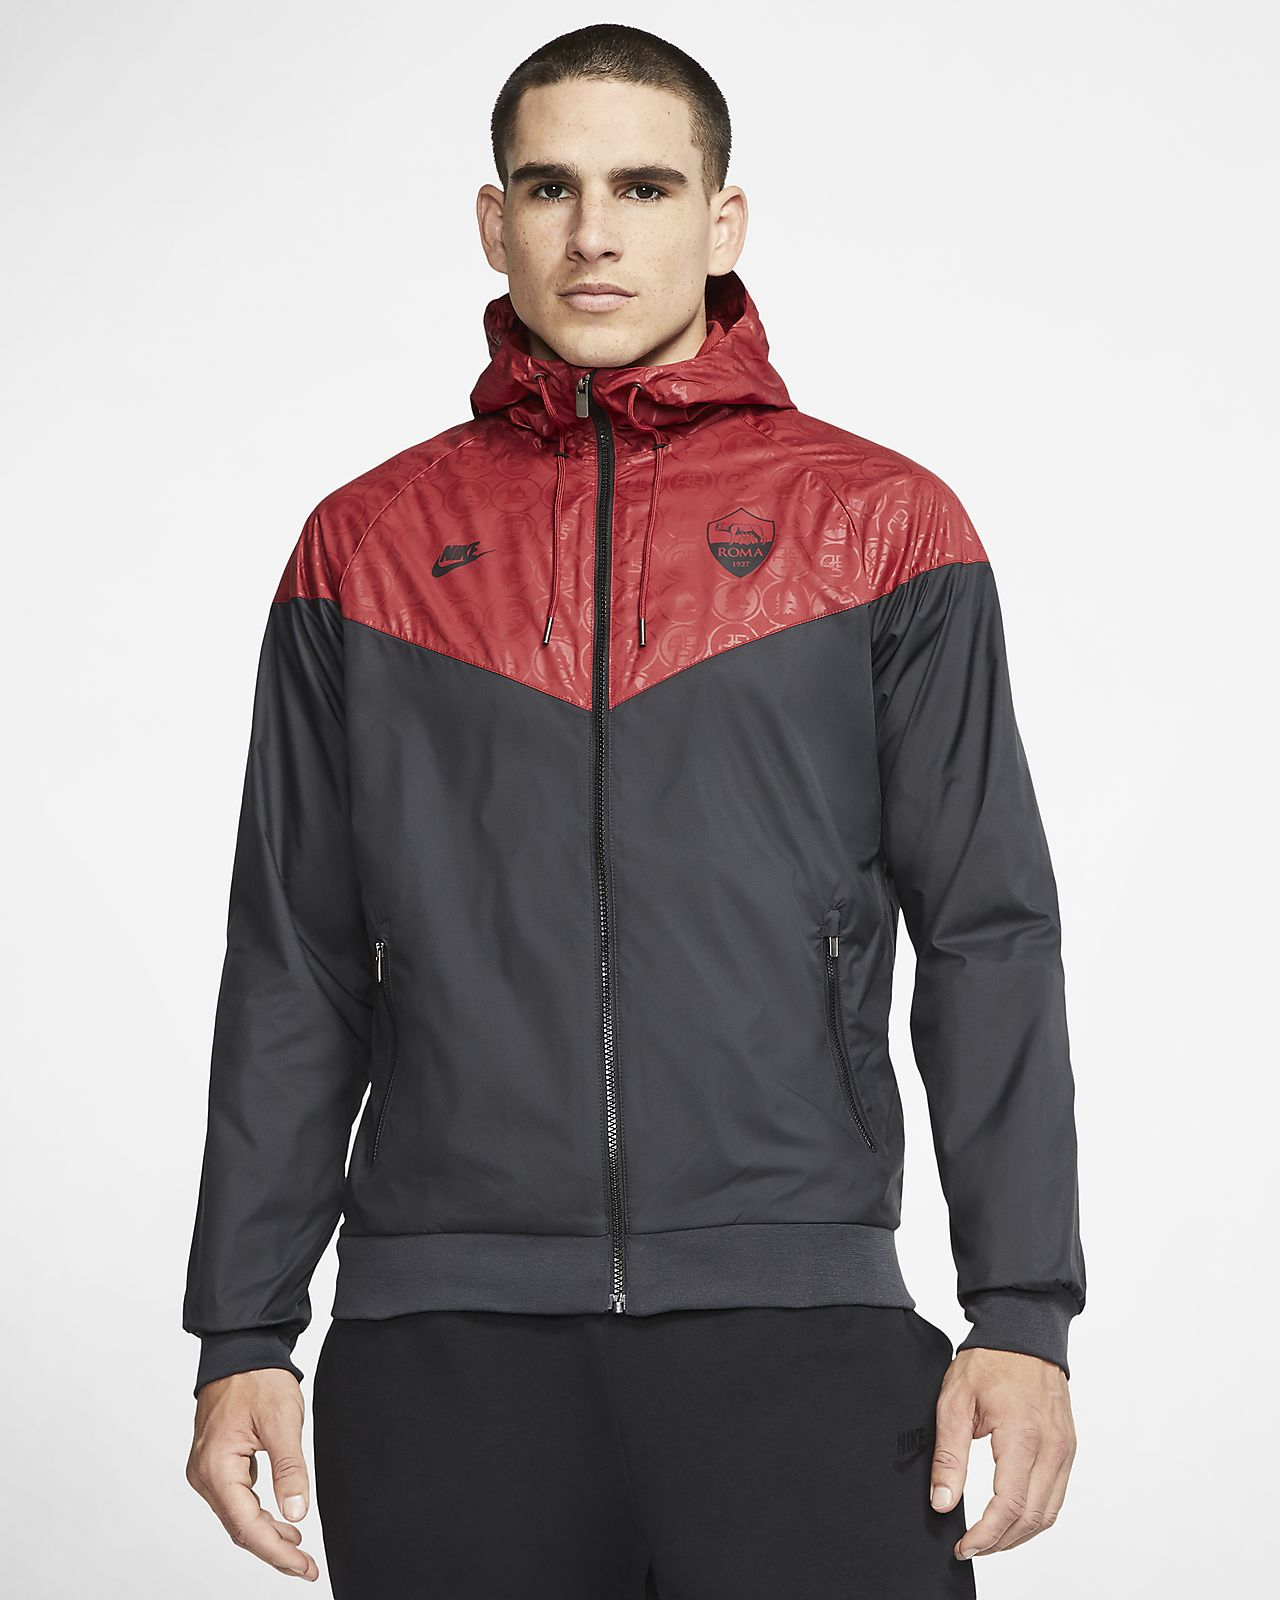 A.S. Roma Windrunner Chaqueta - Hombre